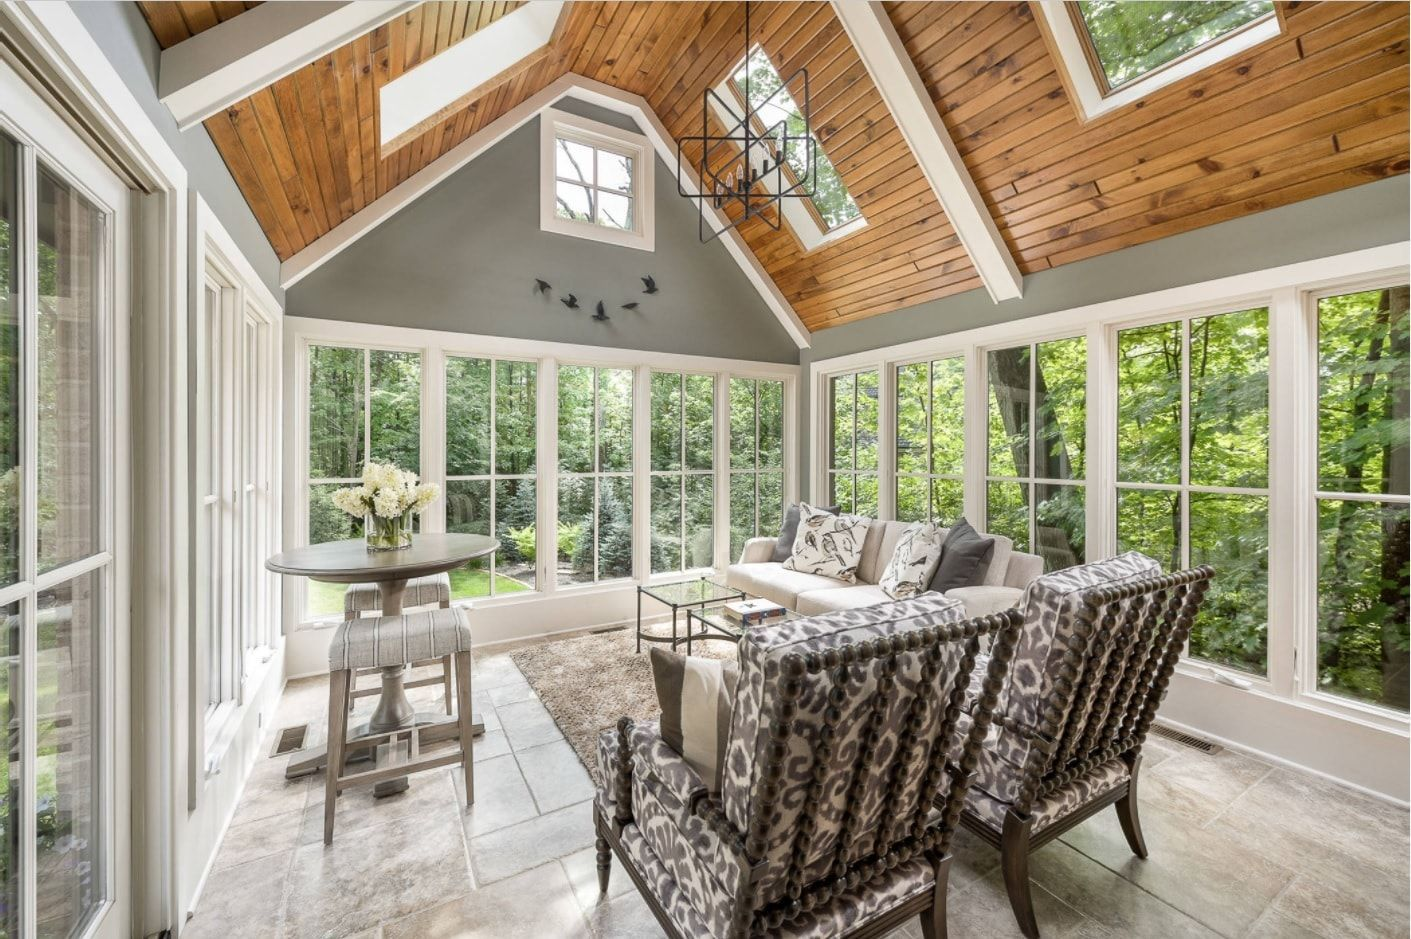 Wooden ceiling with skylight and panoramic white latticed windows